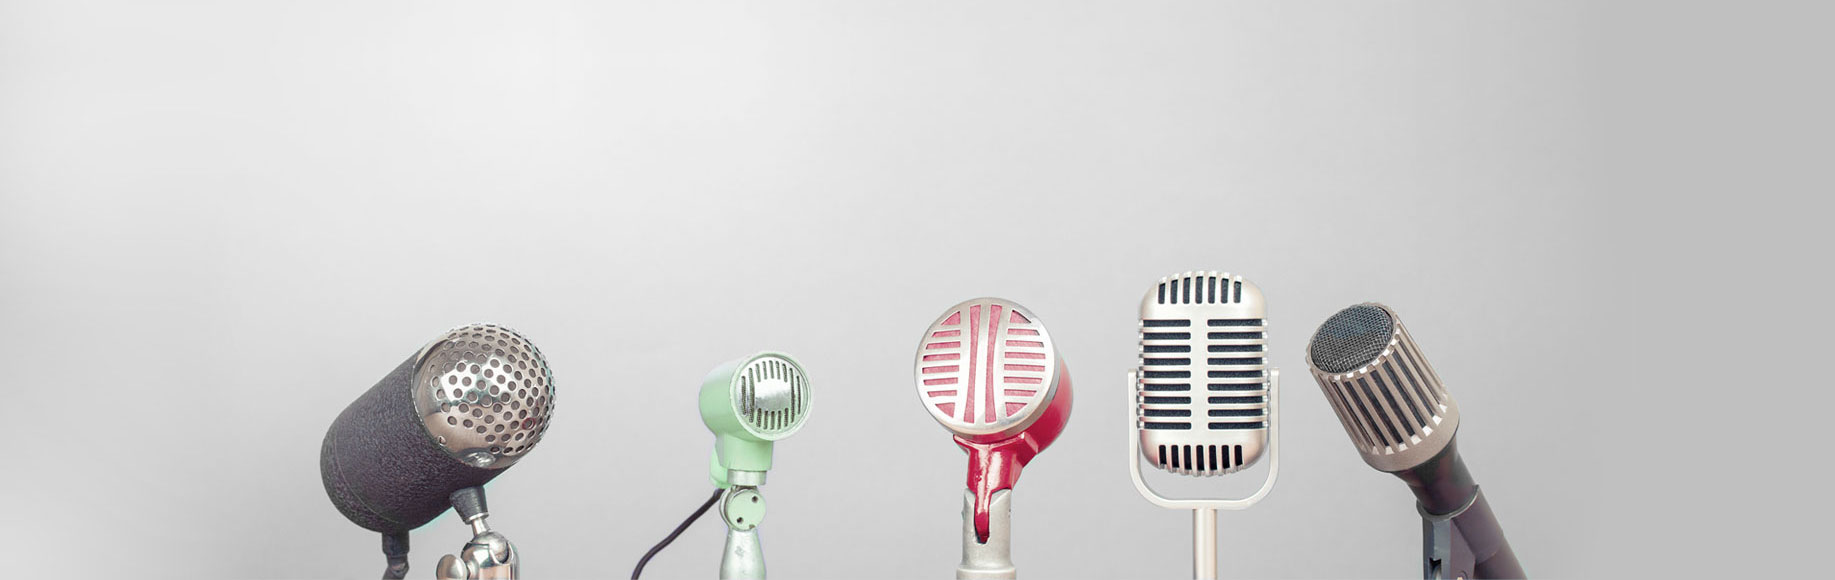 home-microphones-banner-color2